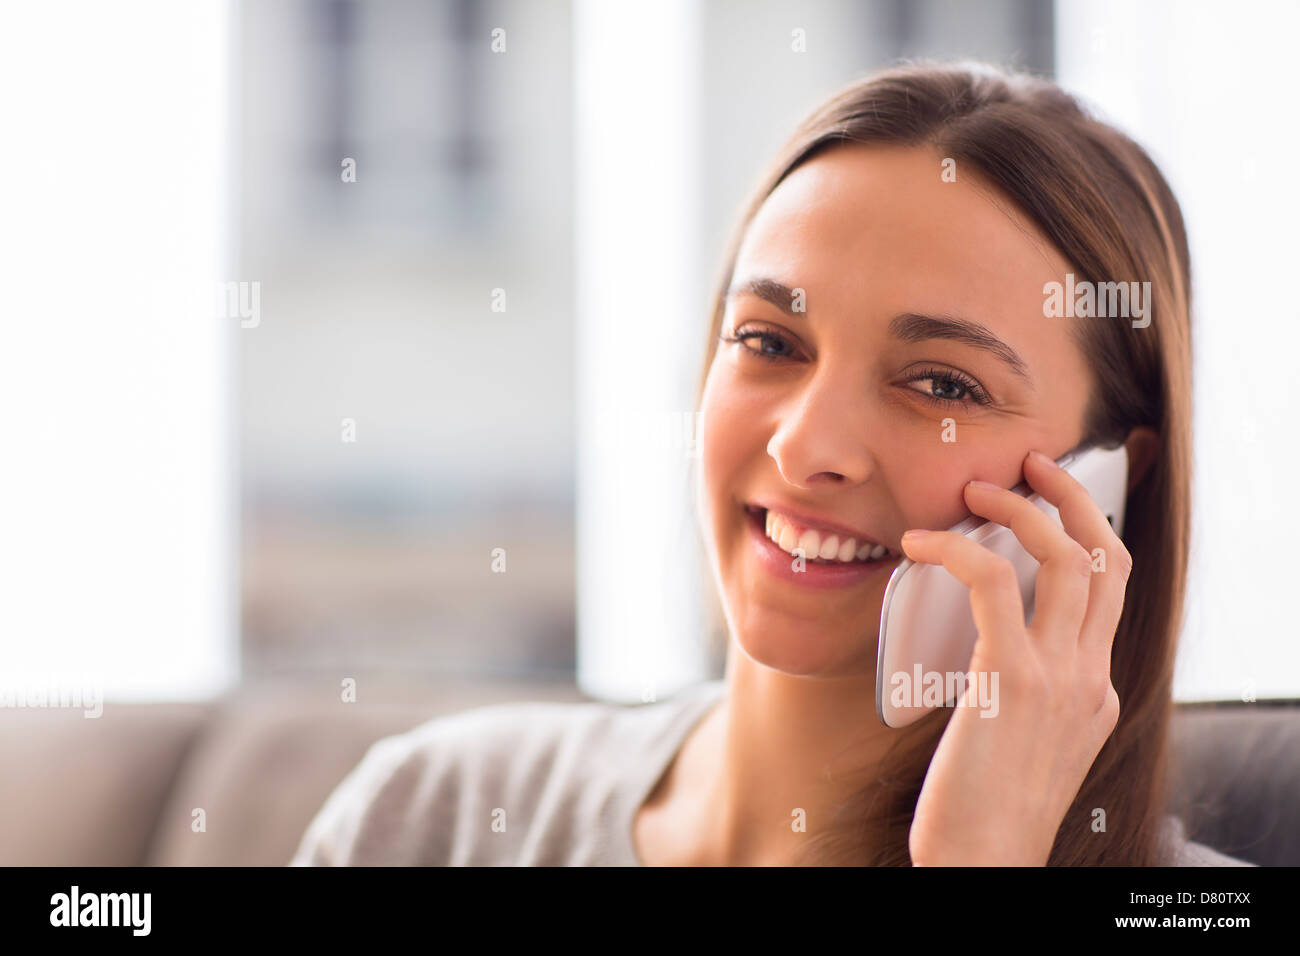 Pretty young woman using white smart phone at home looking at the camera - Stock Image